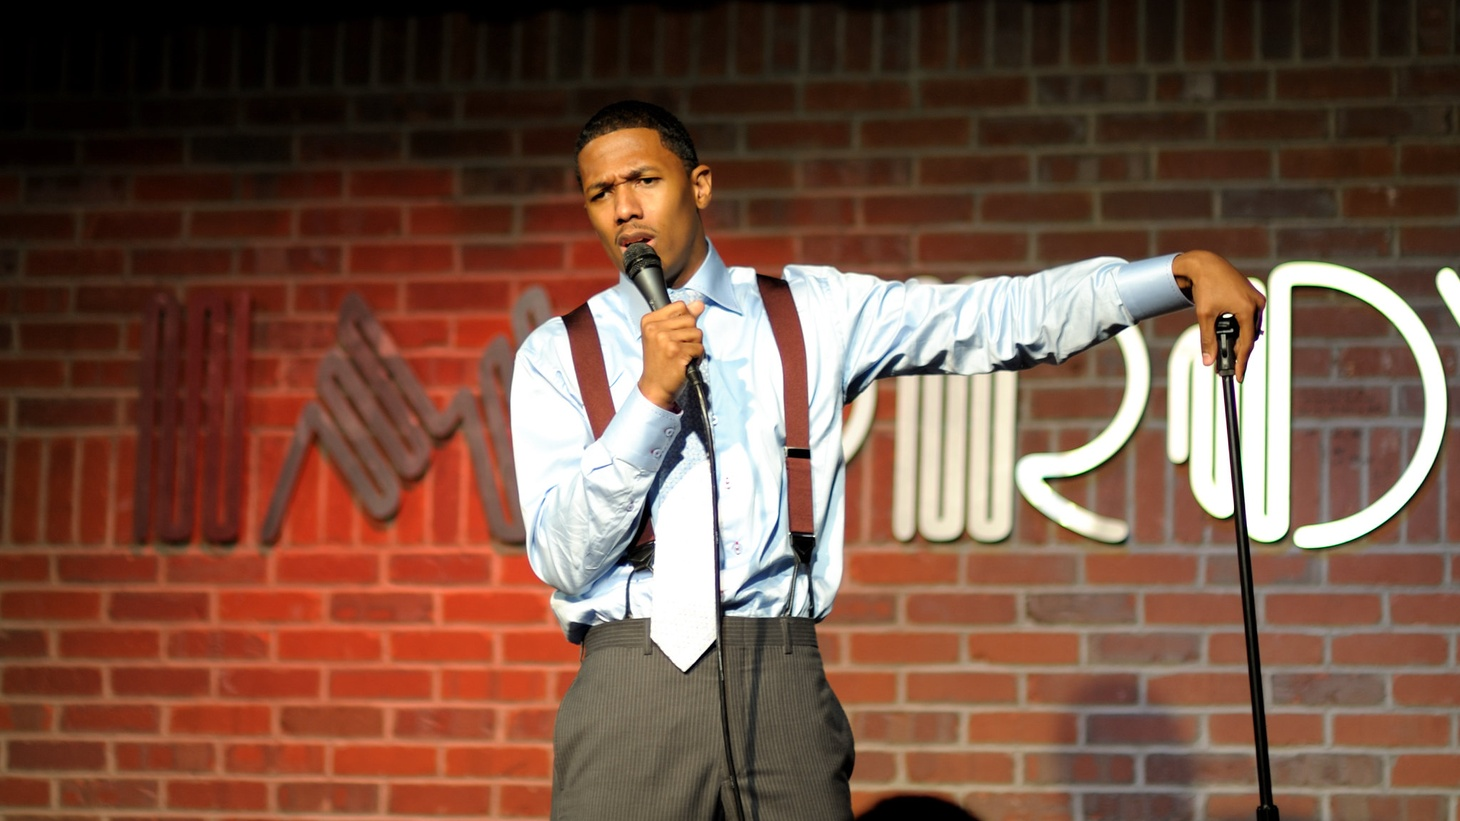 Nick Cannon's comments on his podcast were widely criticized for perpetuating stereotypes and conspiracy theories against Jewish people.